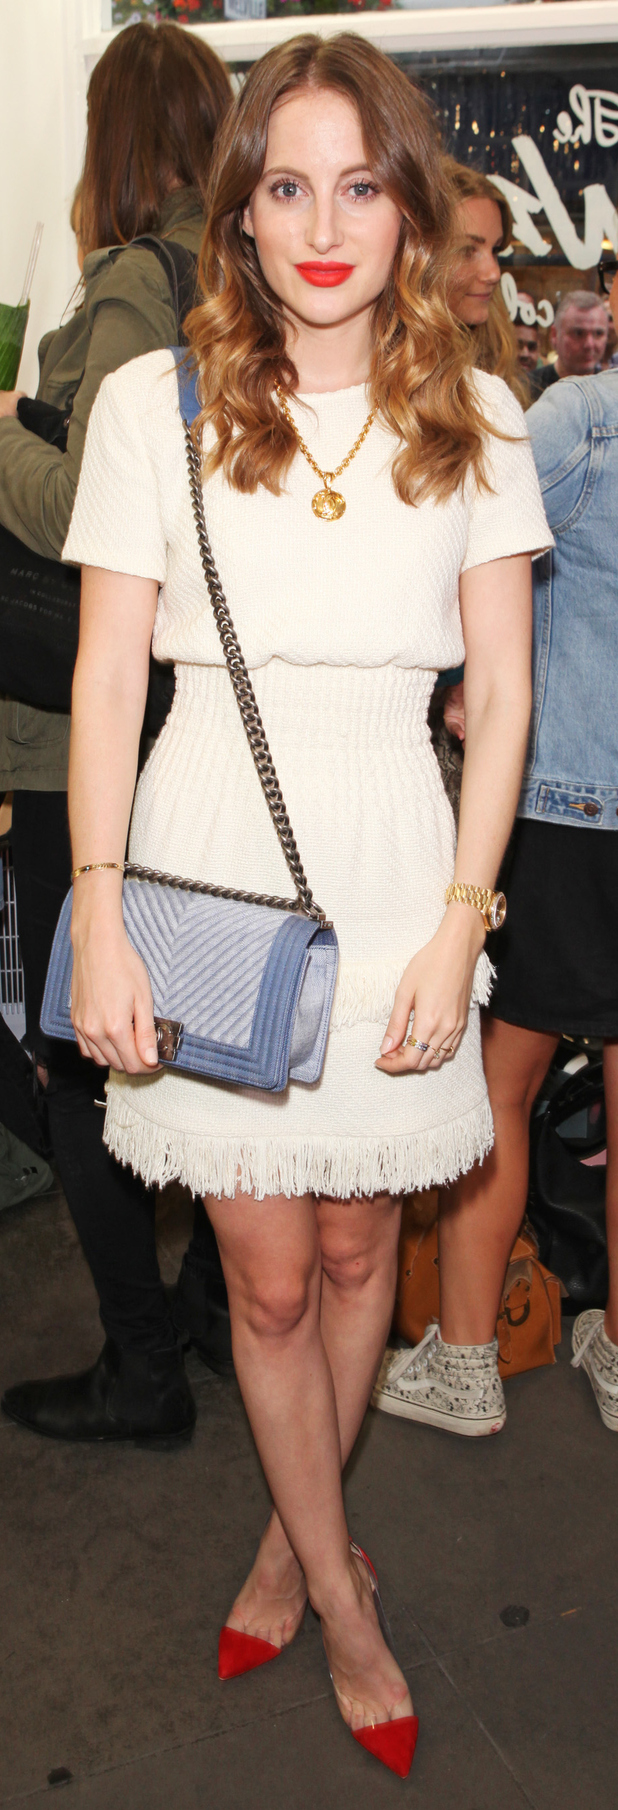 MIC's Rosie Fortescue at the Zara Martin X Skinnydip London party 5th July 2015